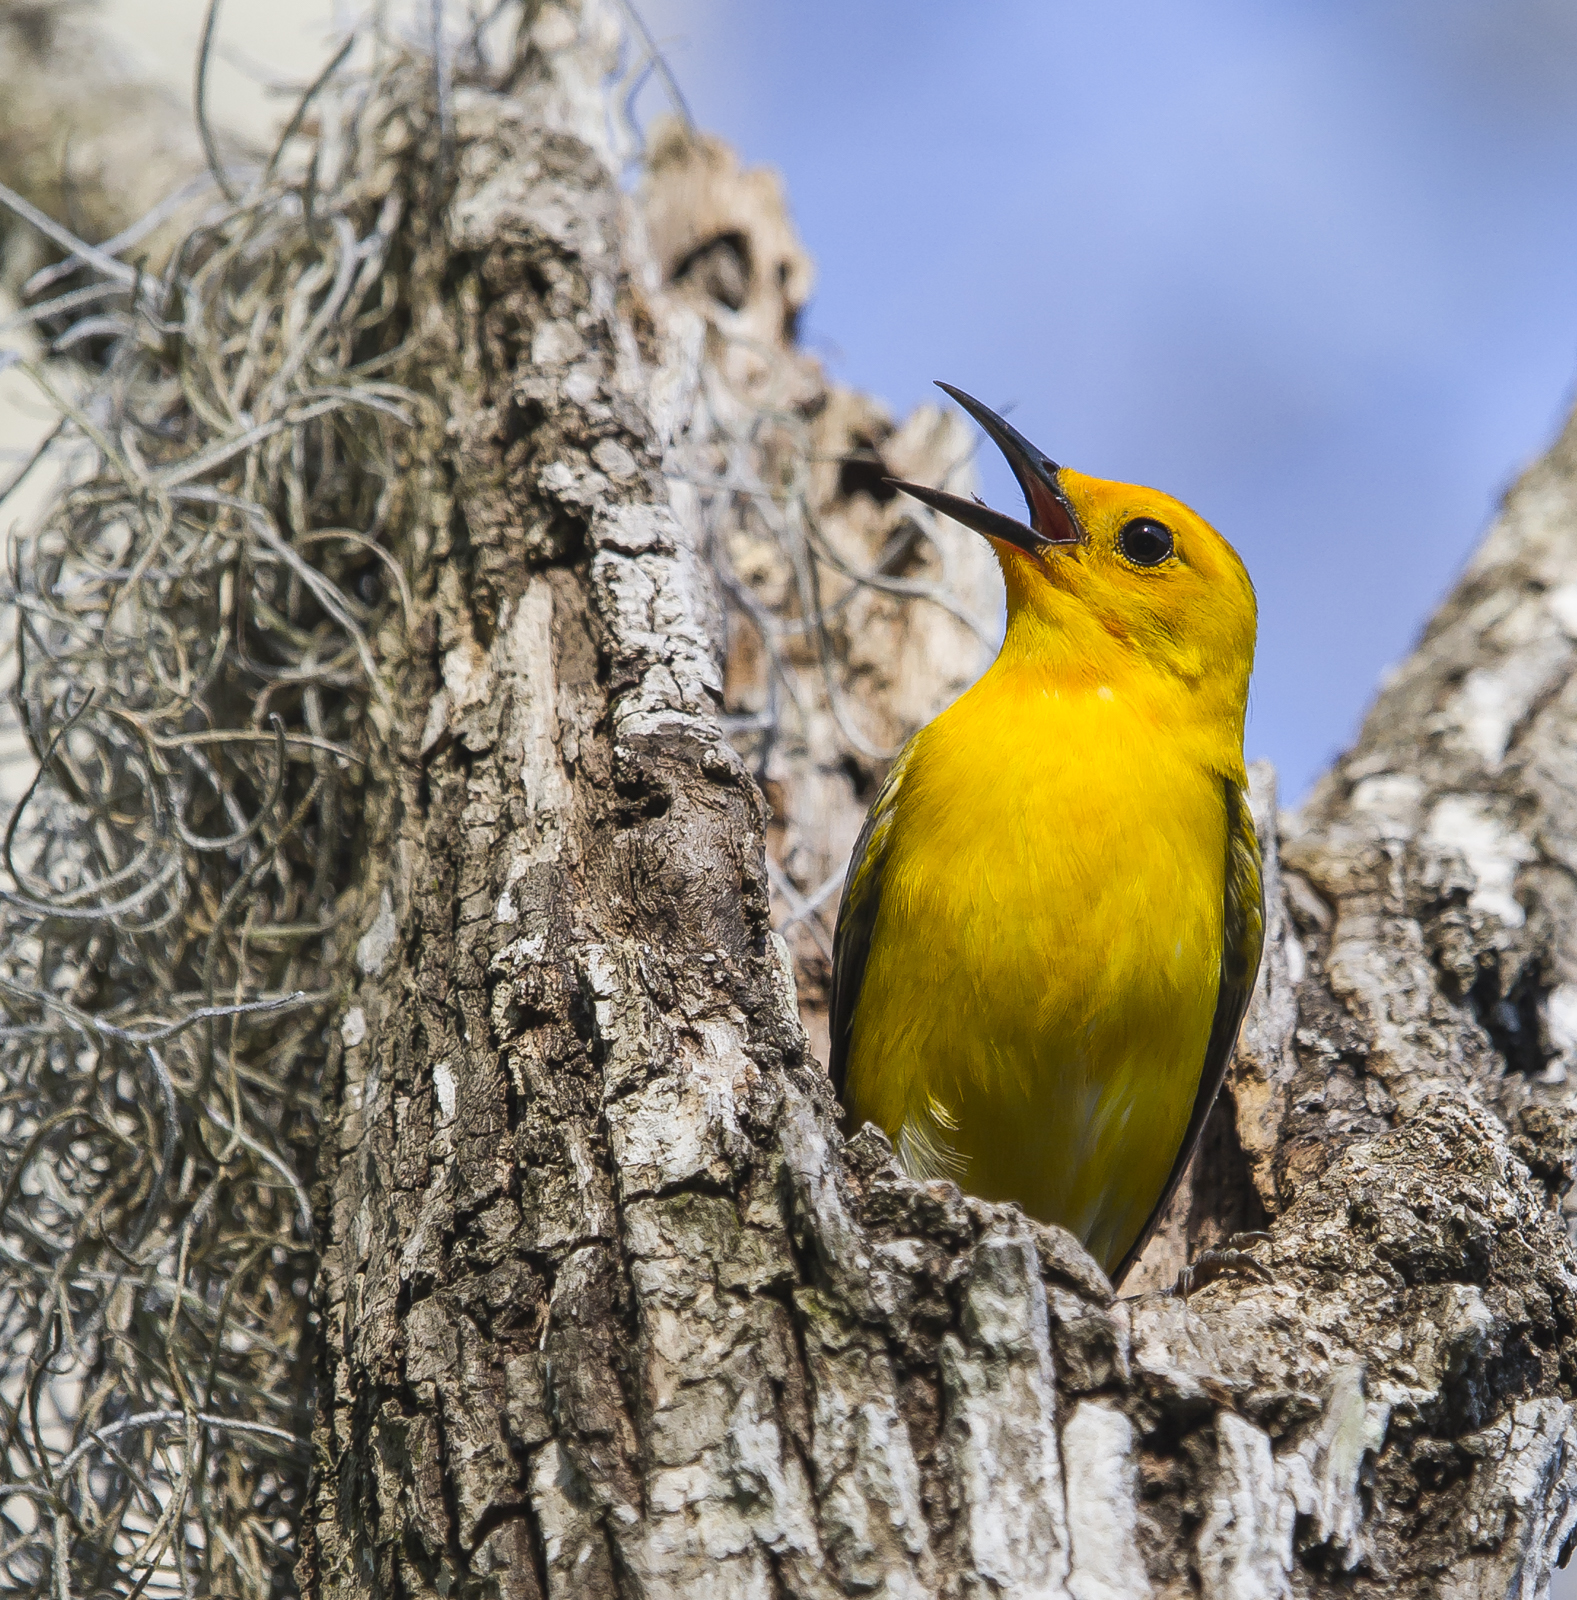 Prothonotary Warbler singing at nest cavity 1